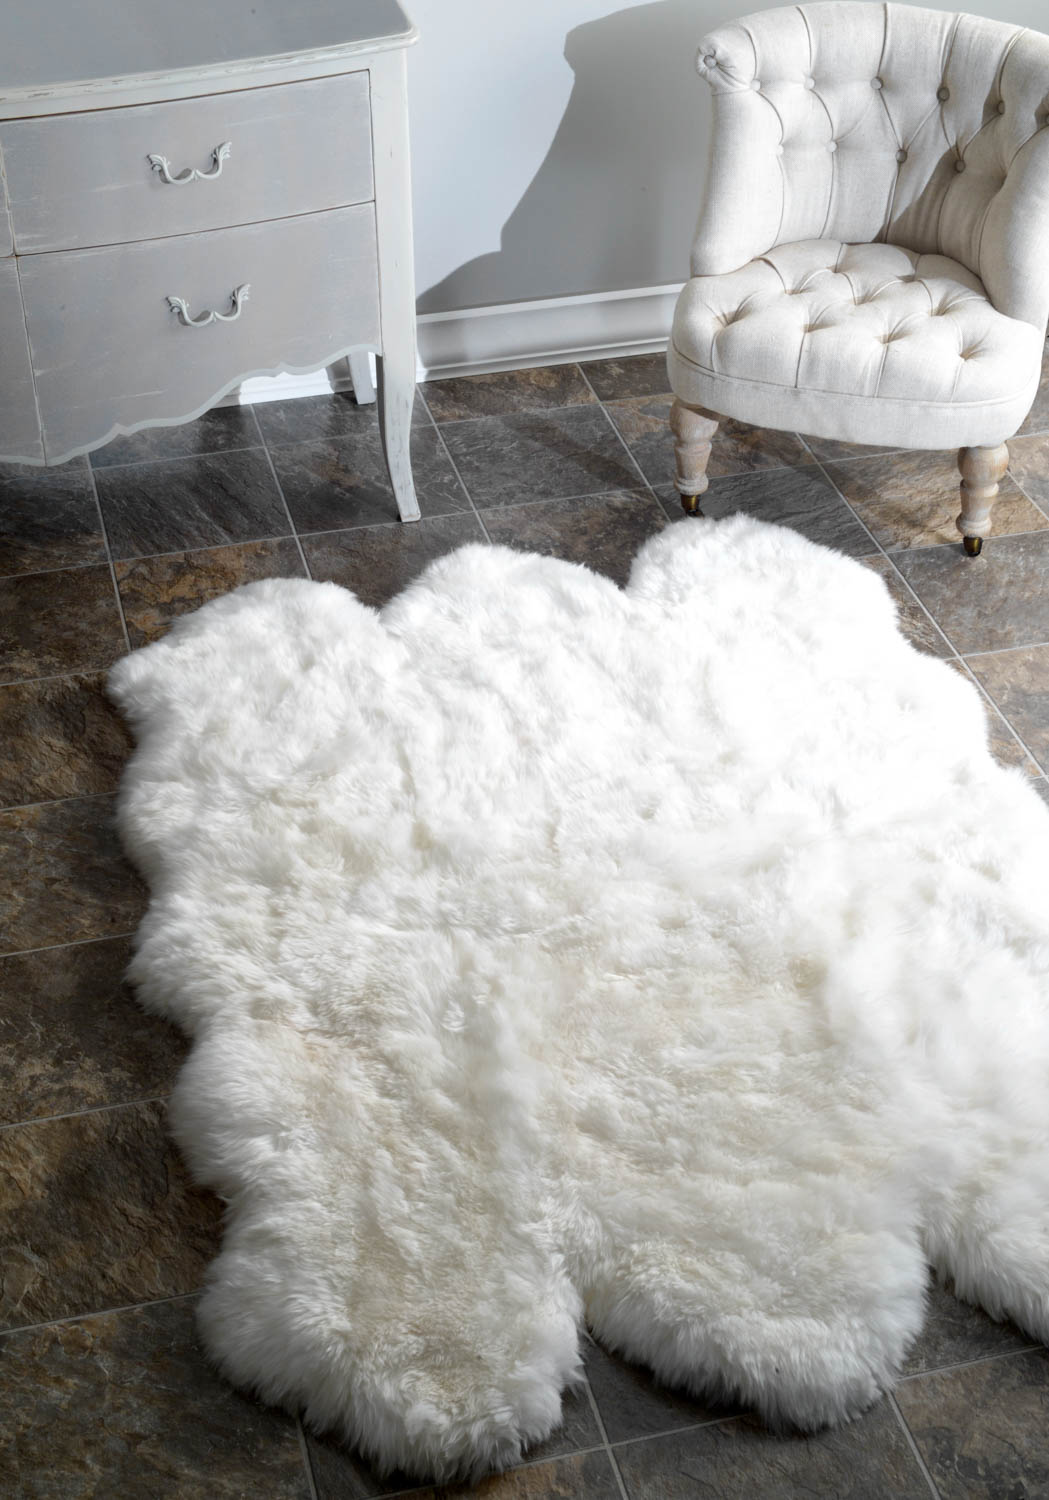 Astounding white fur rug with Best wooden laminate flooring and sofa chairs for living room Ideas